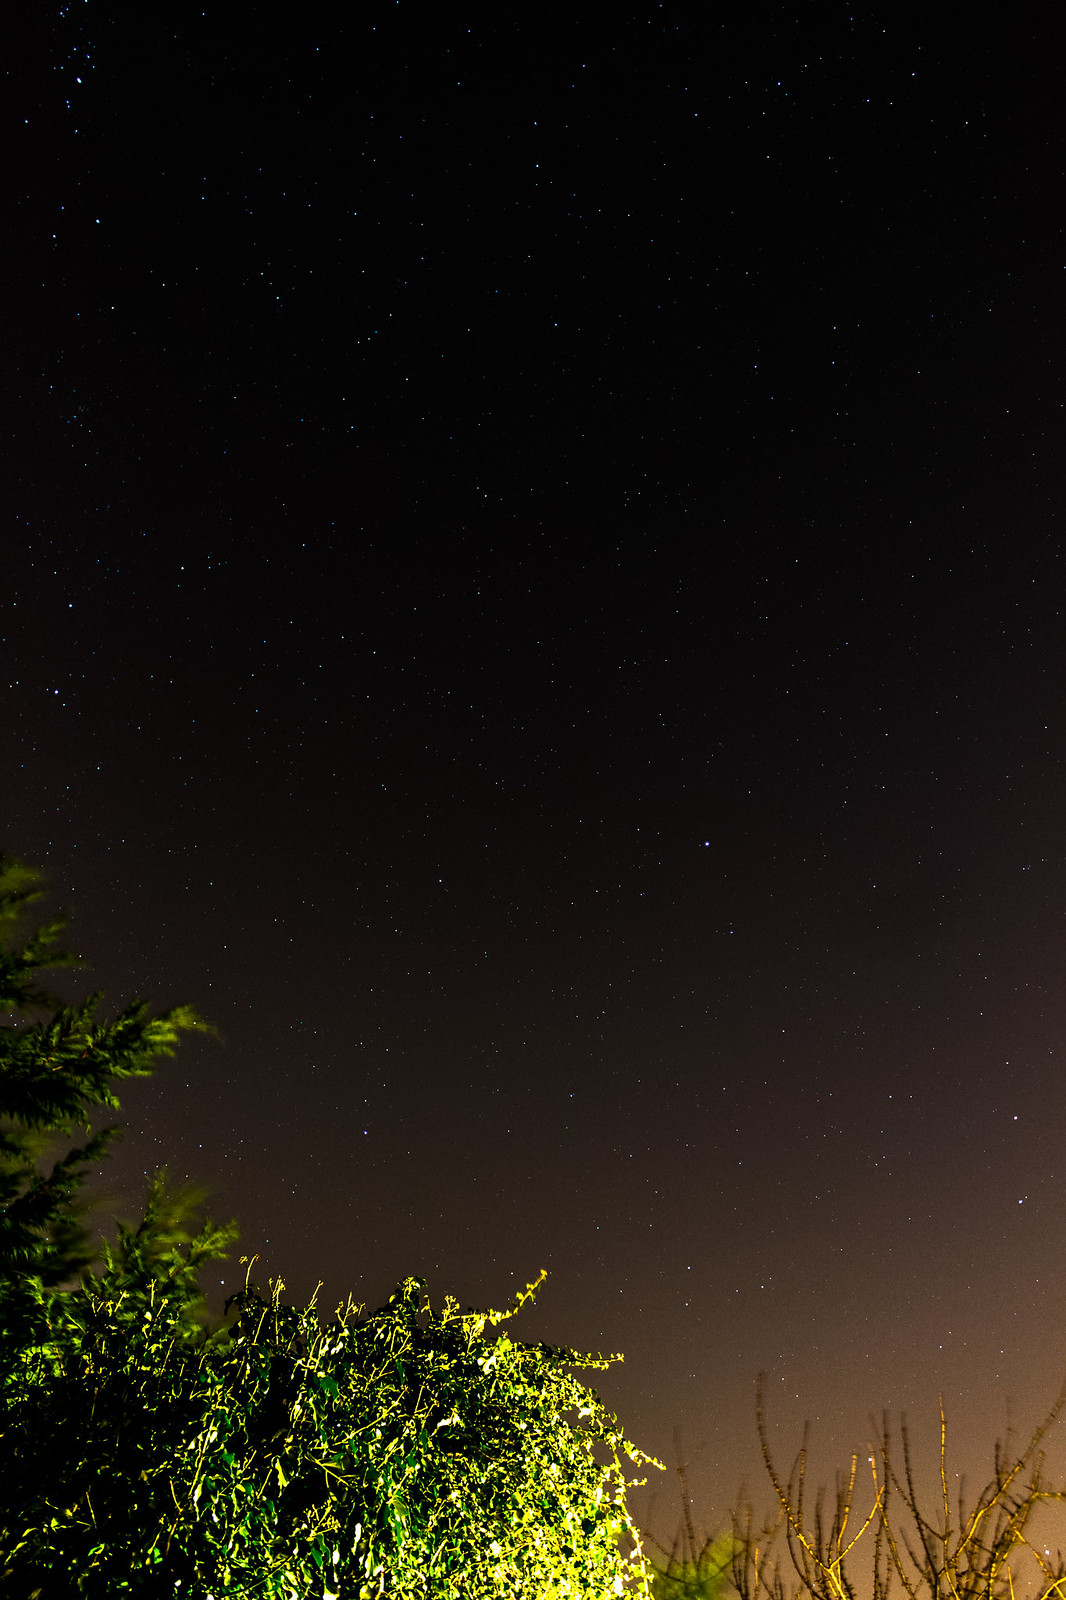 Light polluted image after Lightroom processing